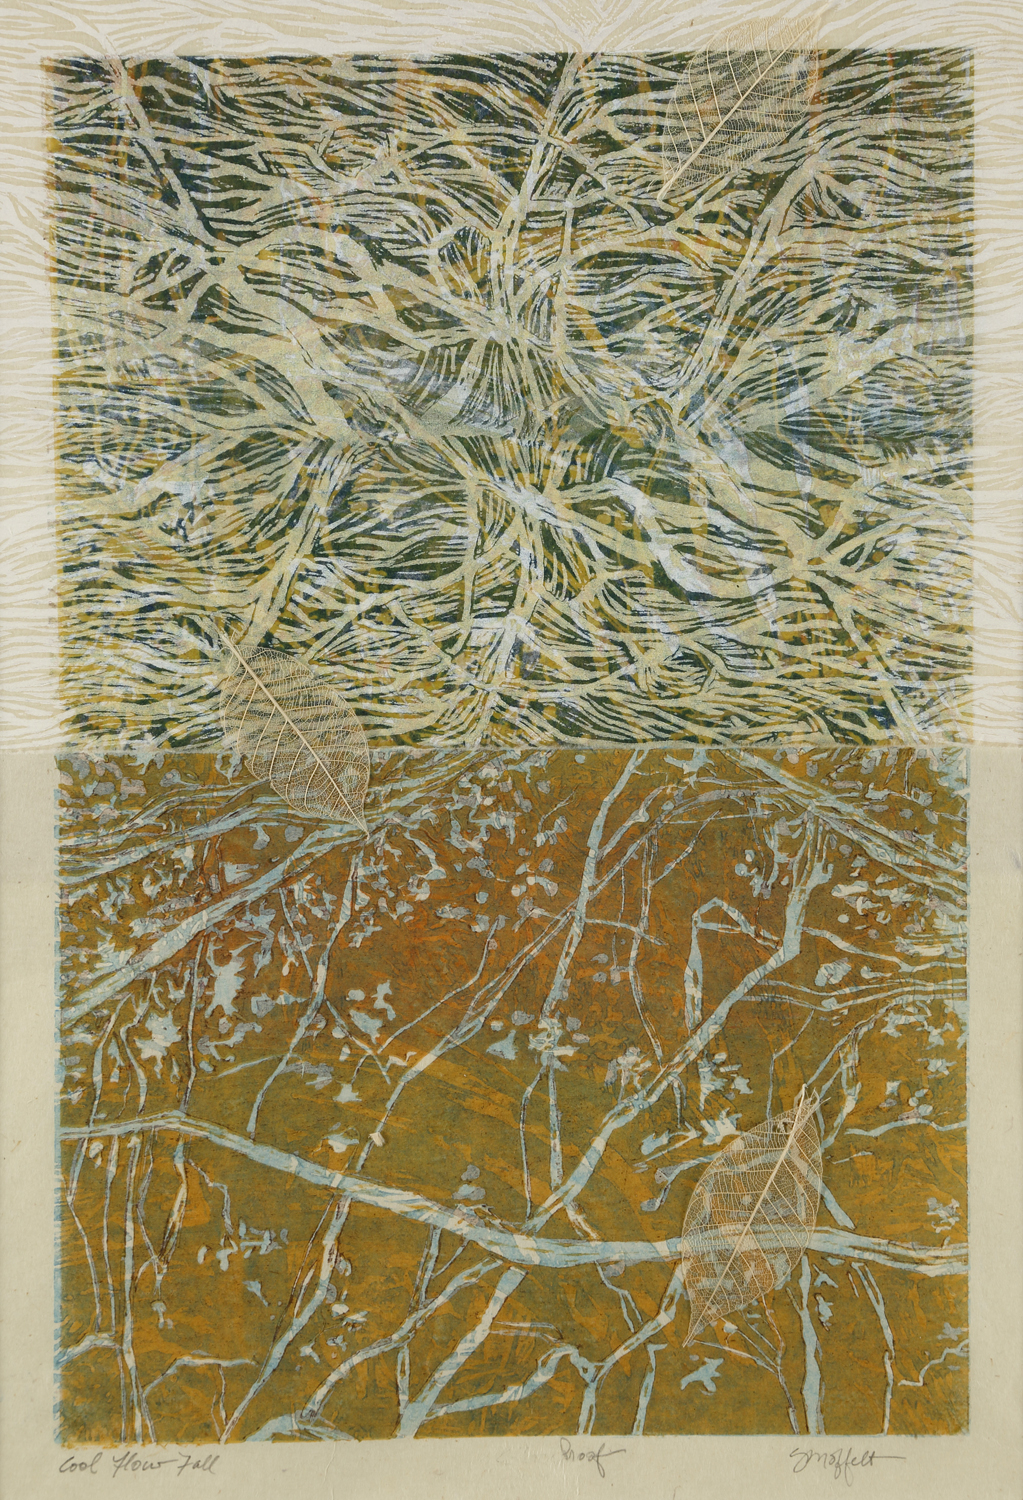 """""""Cool Flow, Fall"""" by Susan Moffett, Relief Monoprint Collage, 14x20in, 2016"""